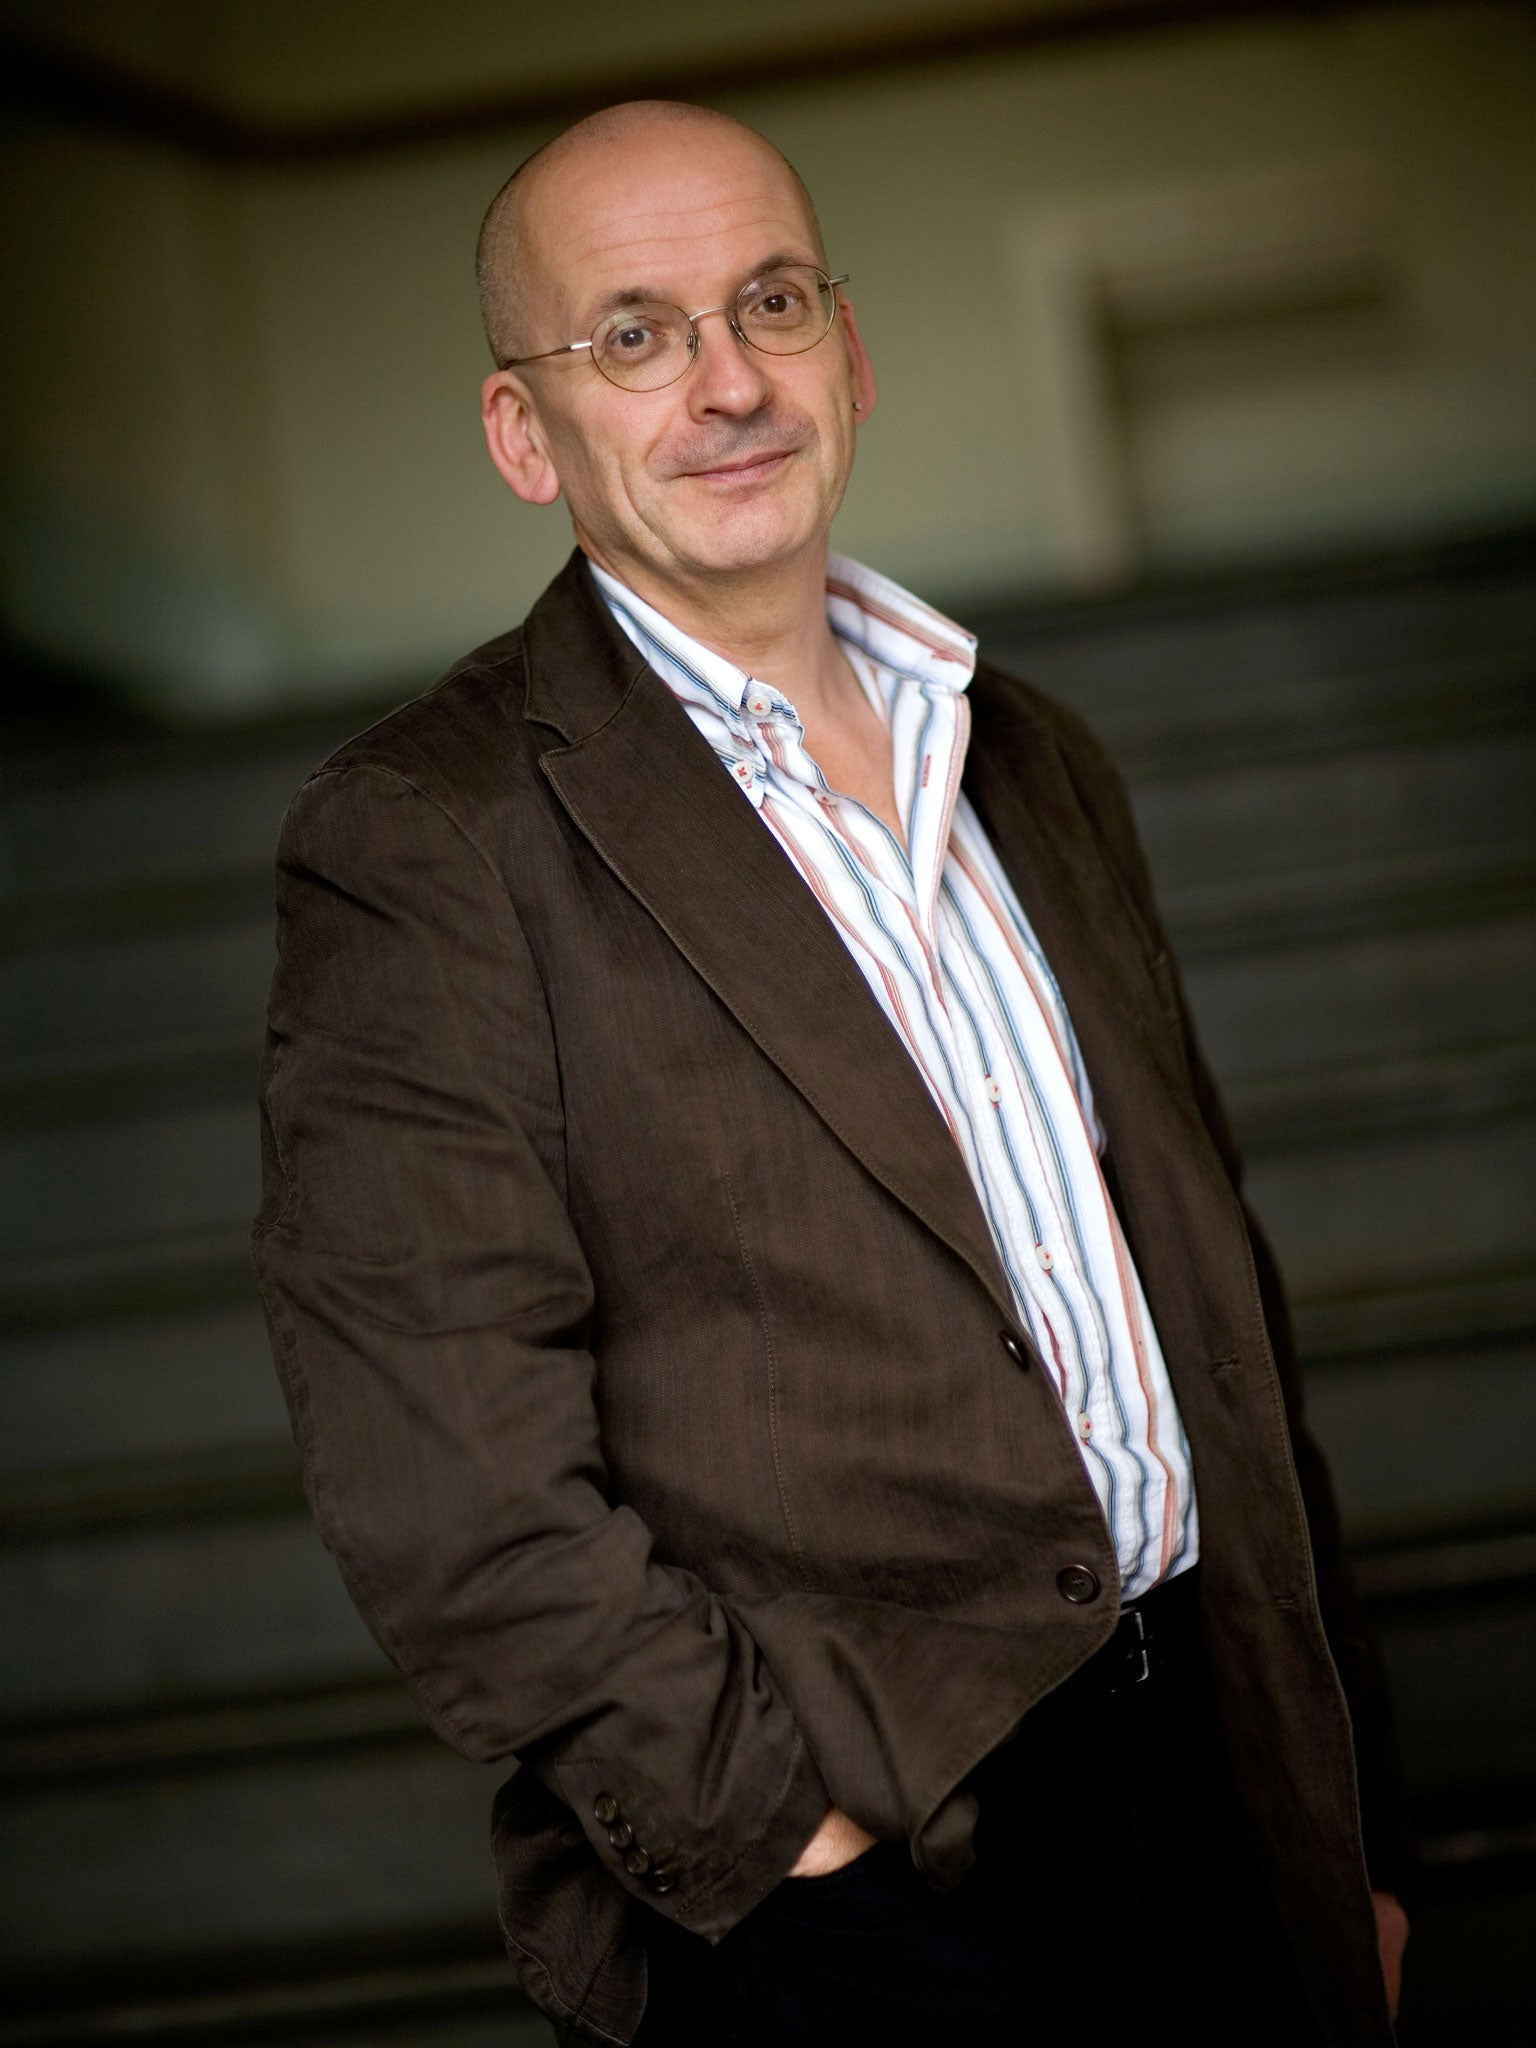 roddy doyle creative writing centre Jews in irish literature – 19 feb roddy jews in irish literature – 19 feb roddy doyle in london and working as a lecturer in creative writing at the.